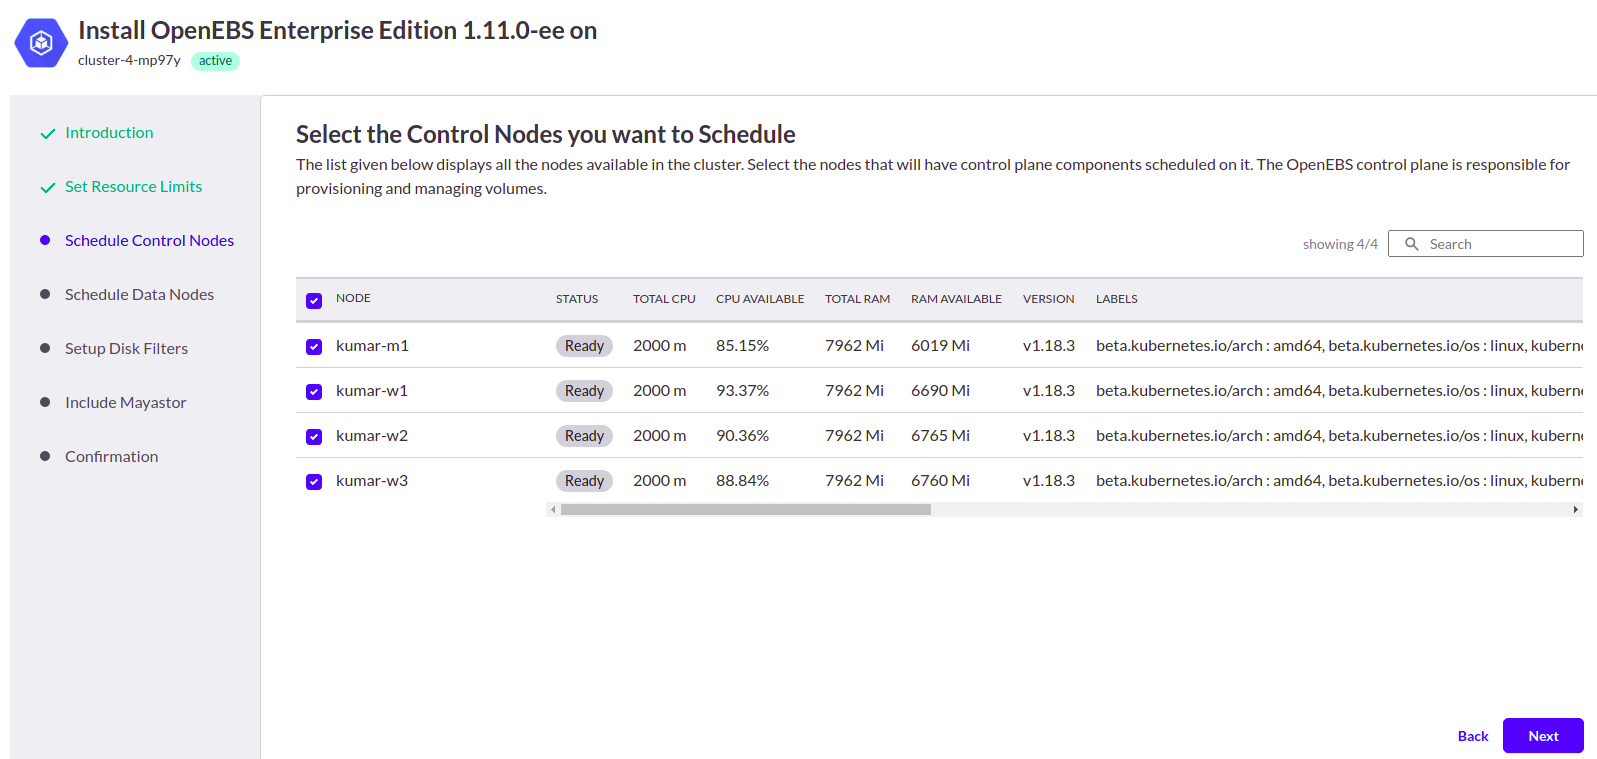 Select the control nodes you want to schedule